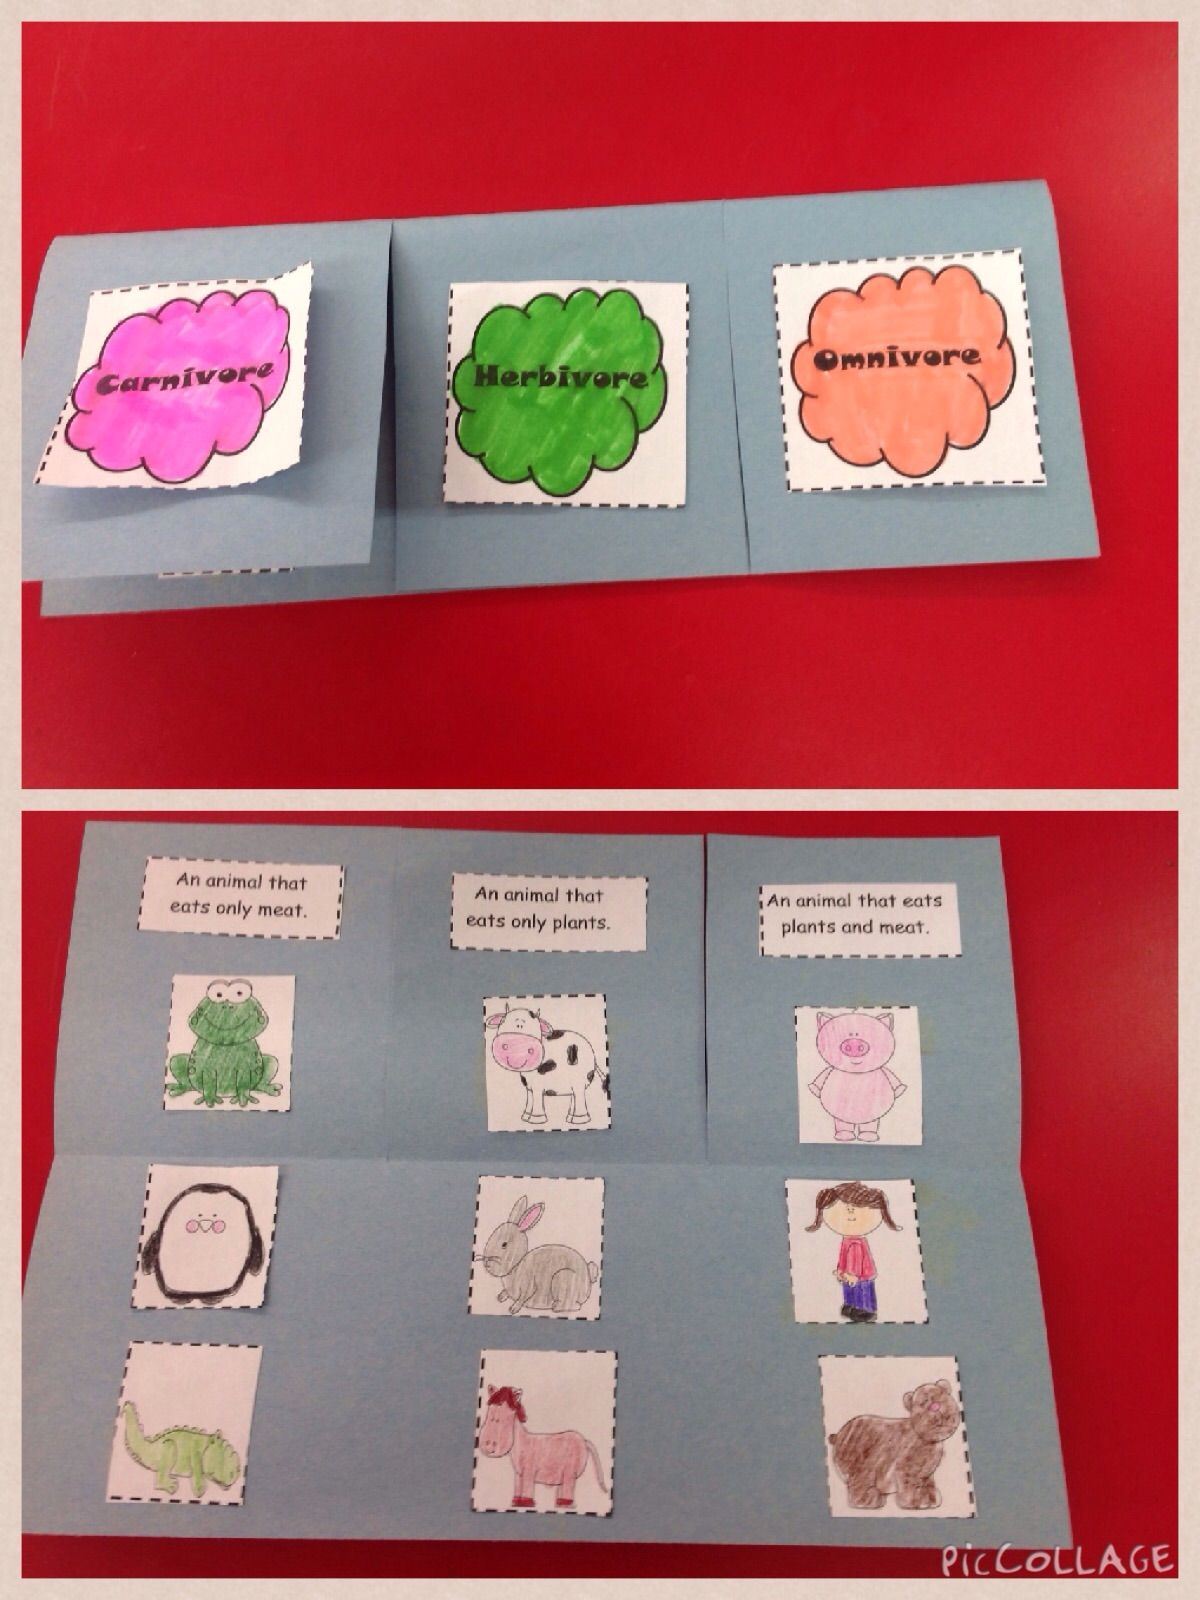 Carnivore Herbivore And Omnivore Foldable And Activities